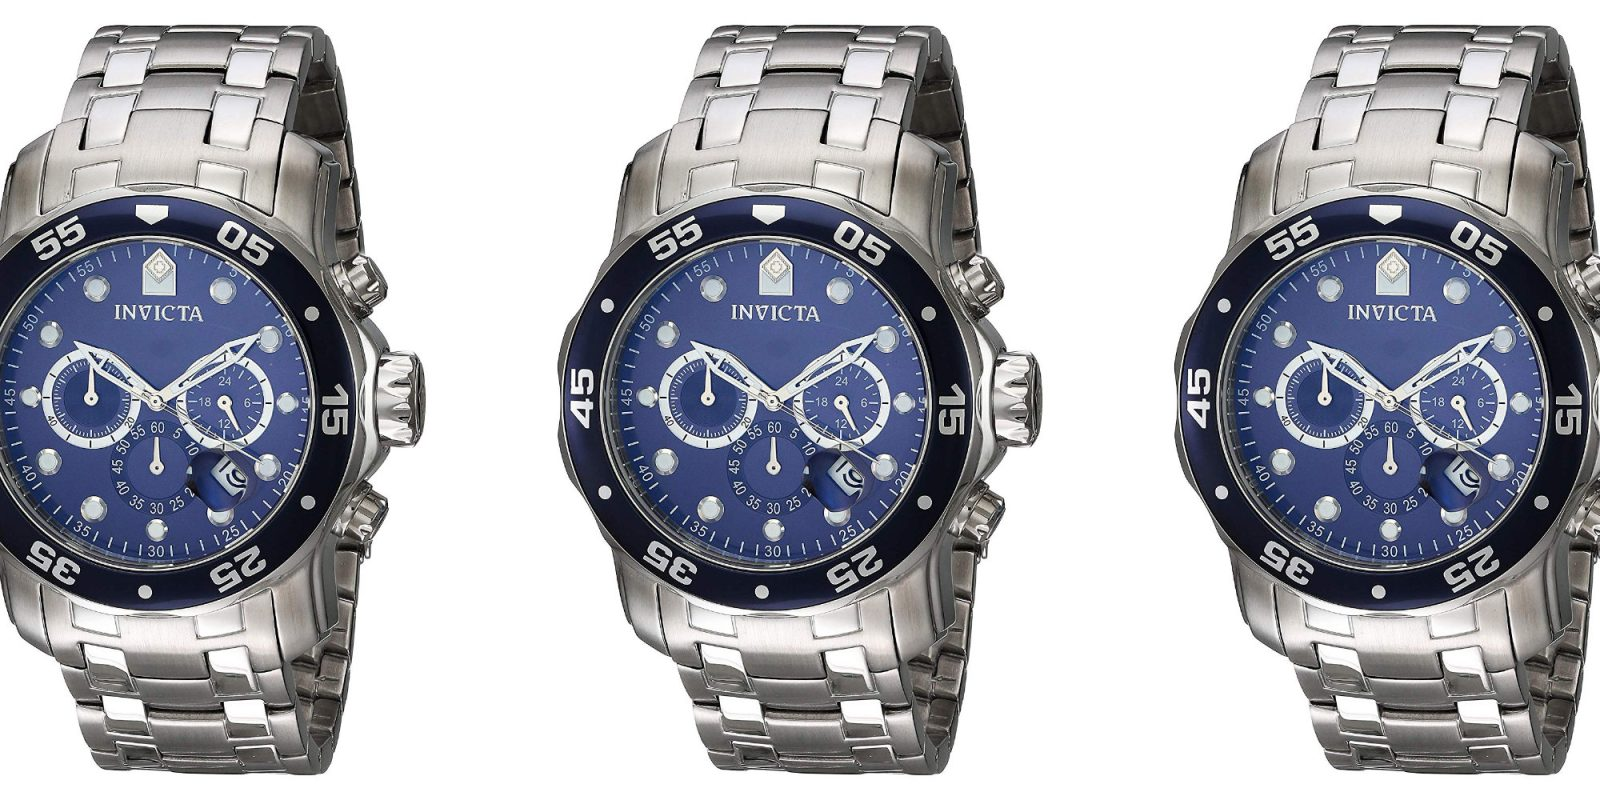 Invicta's 48mm Stainless Steel Pro Diver Watch drops to $70 (Save 25%)